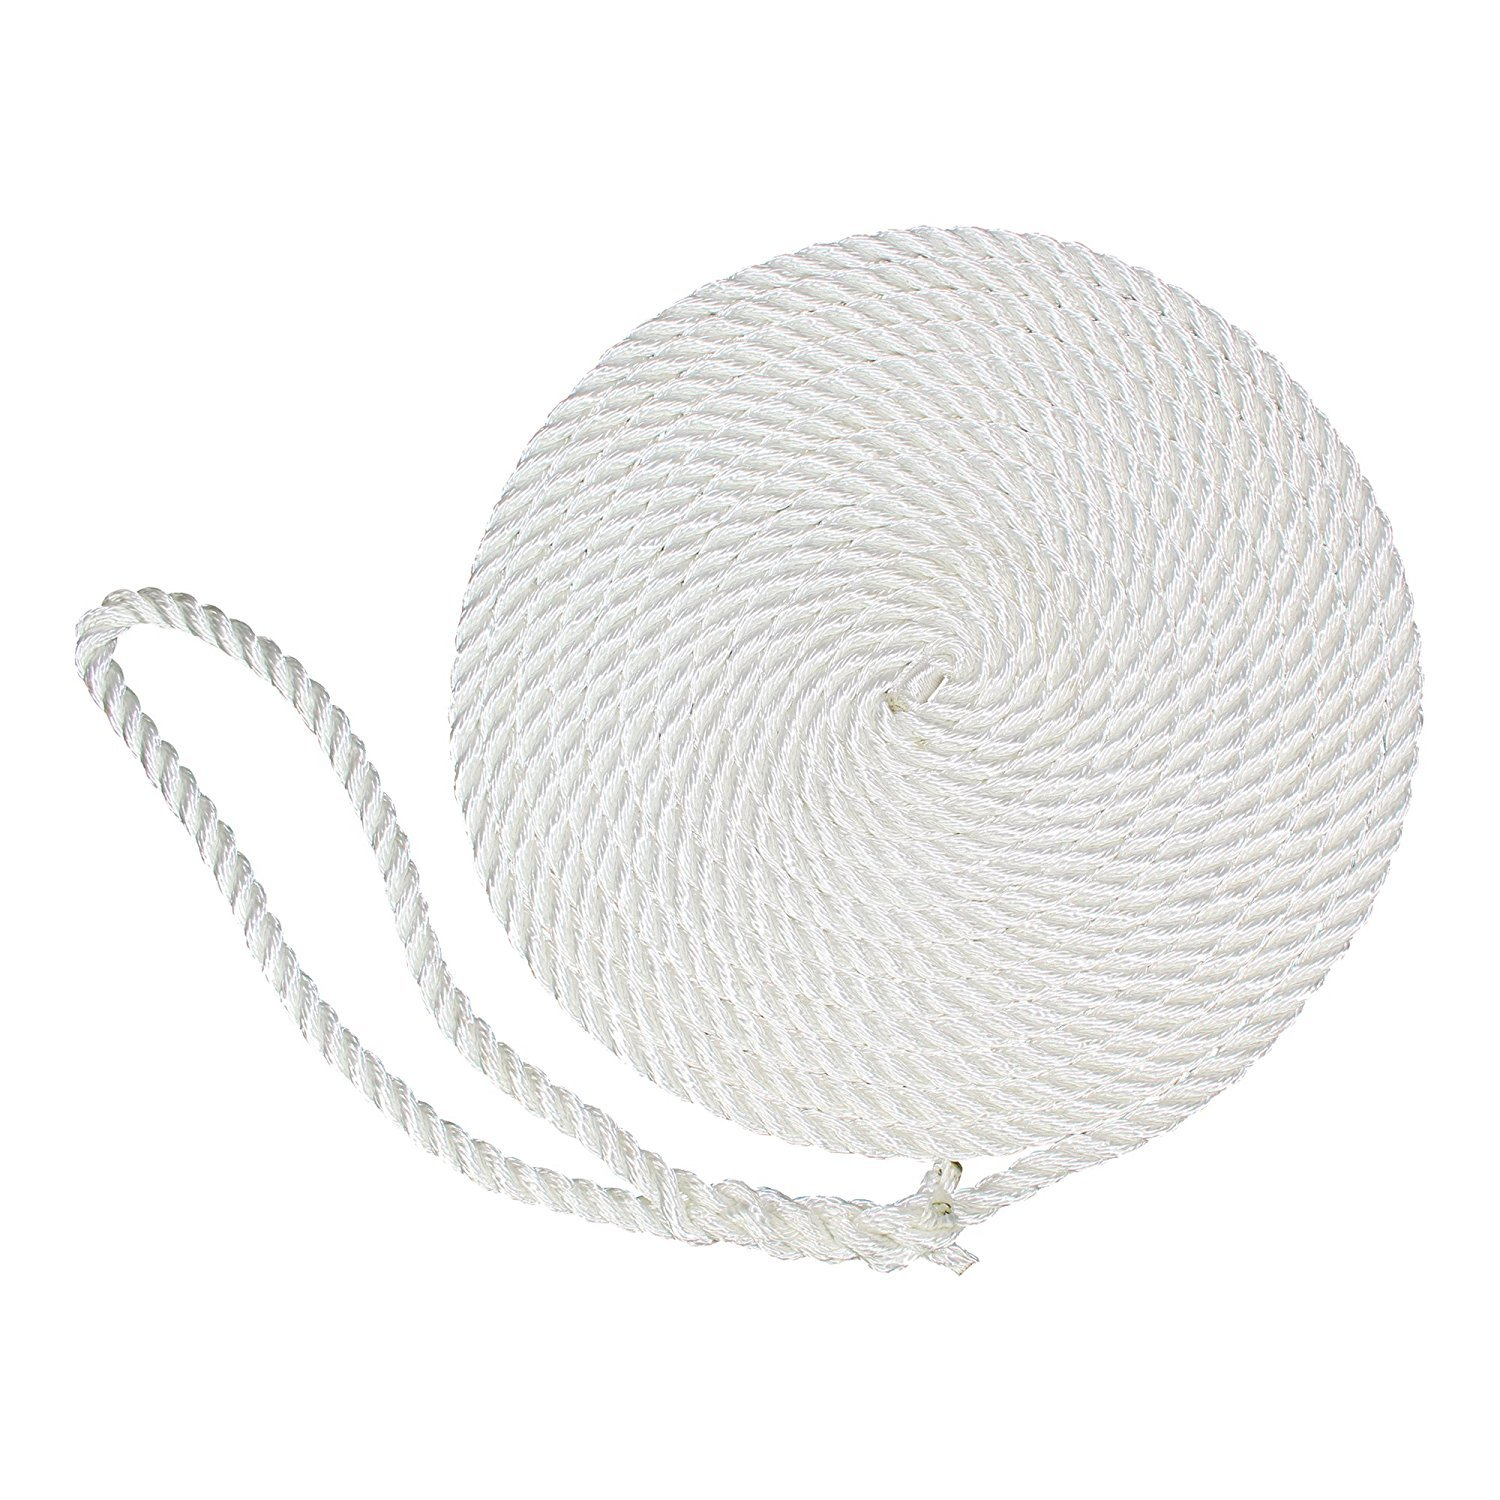 SGT KNOTS Twisted Nylon Dockline (2-Pack, 3/8 in x 15 ft, White) - 3-Strand Twist Nylon Rope Docklines - Marine Ropes for Boat/Boats - Dock Lines by SGT KNOTS